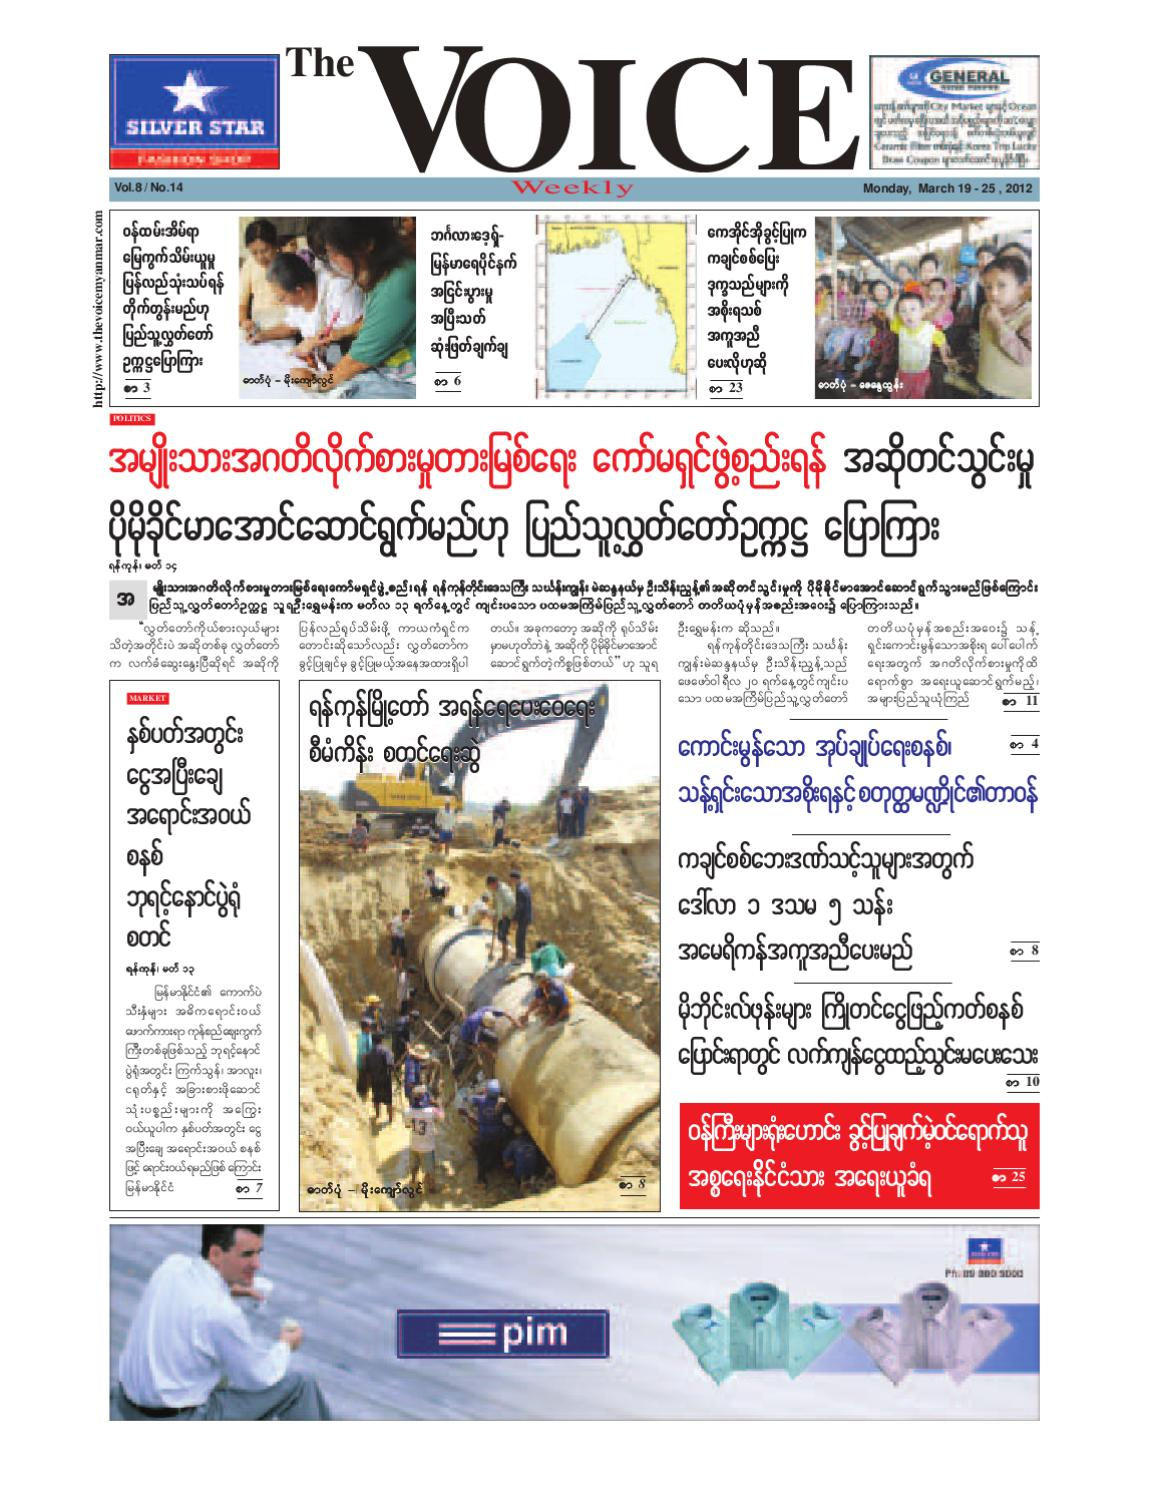 Myanmar Journals Free Download Home: The Voice Weekly Journal In Myanmar/Burmese By The